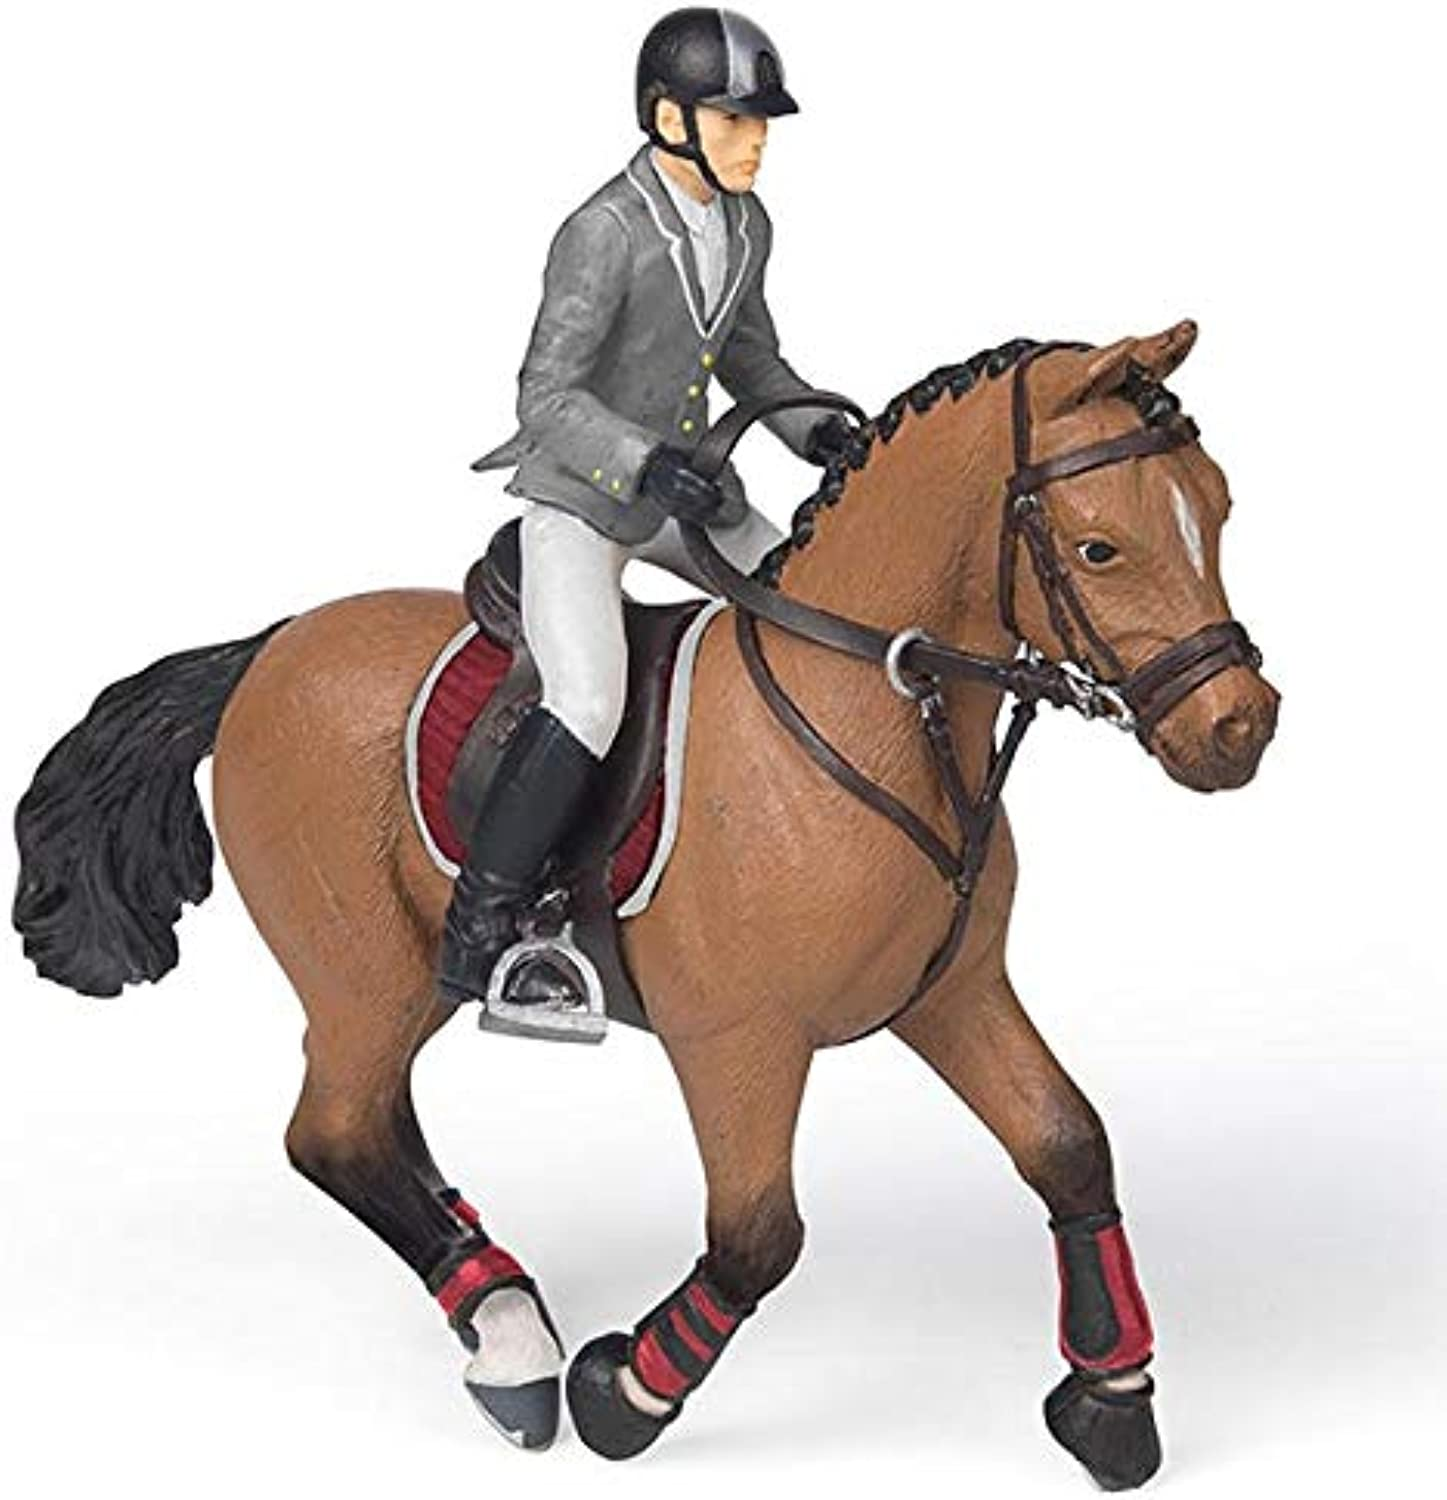 Papo 51561 Competition Horse with Rider Figures